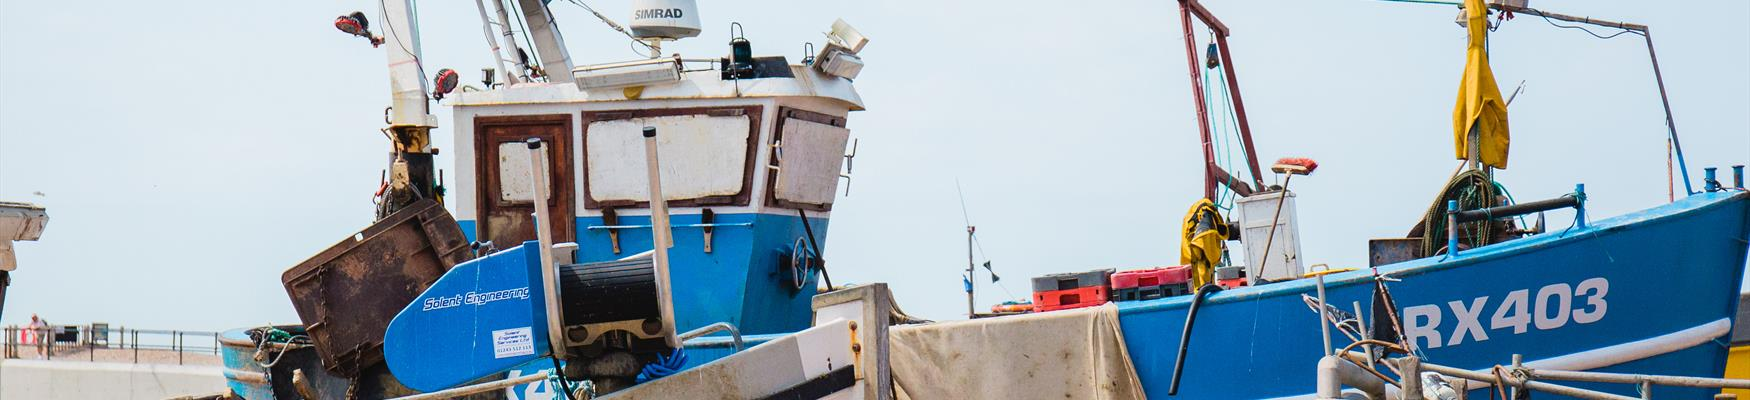 Fishing boats on Hastings beach, East Sussex